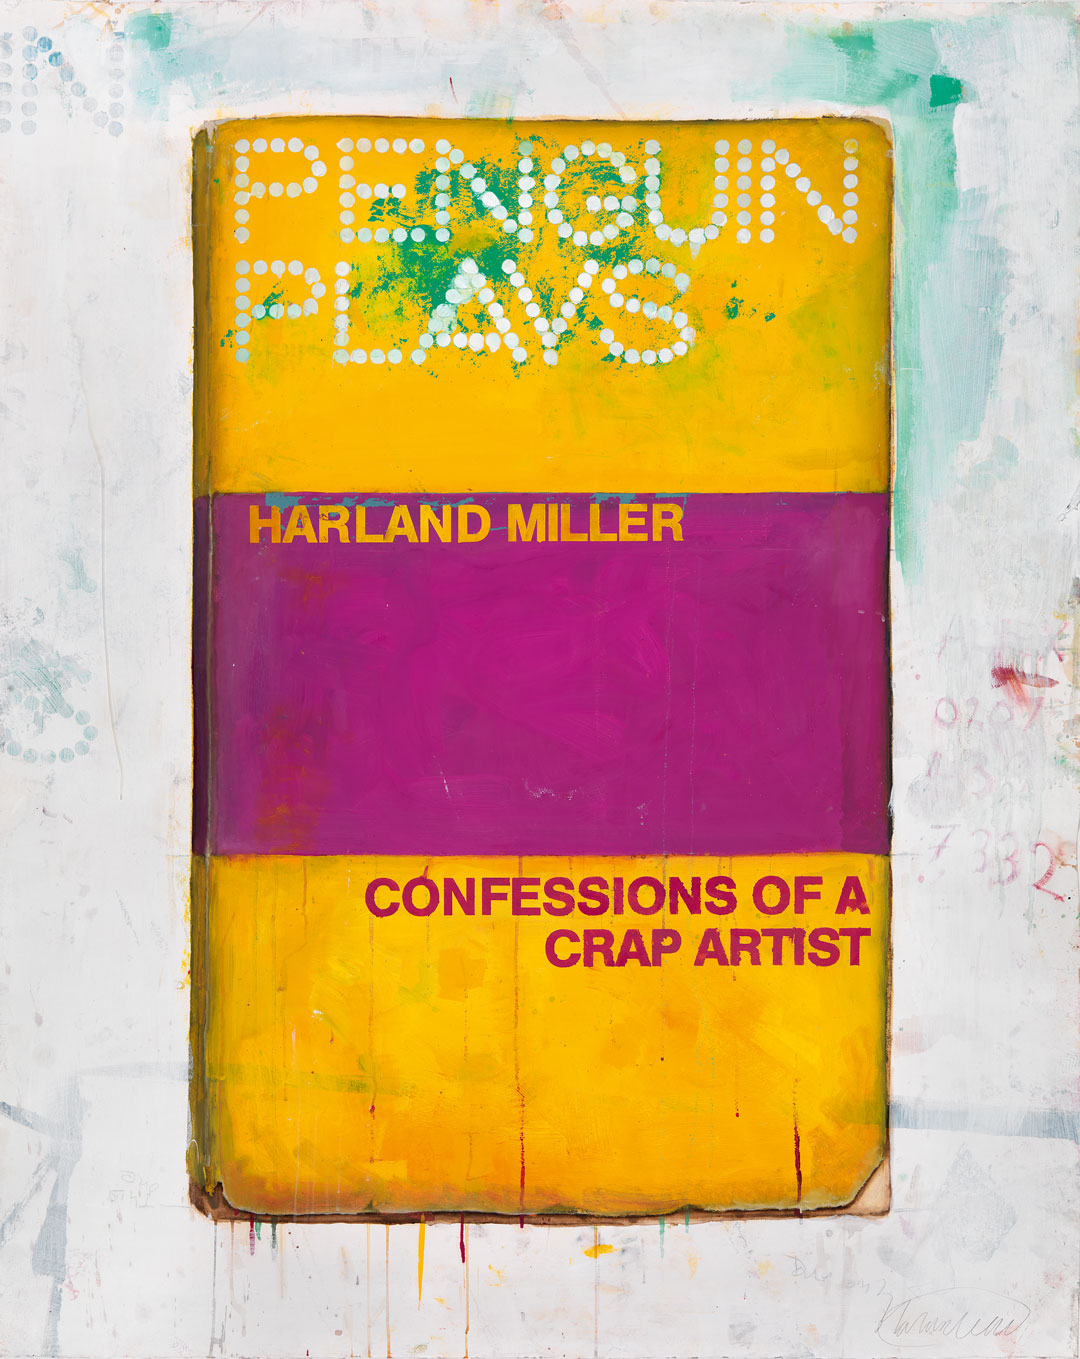 World Book Day according to Harland Miller